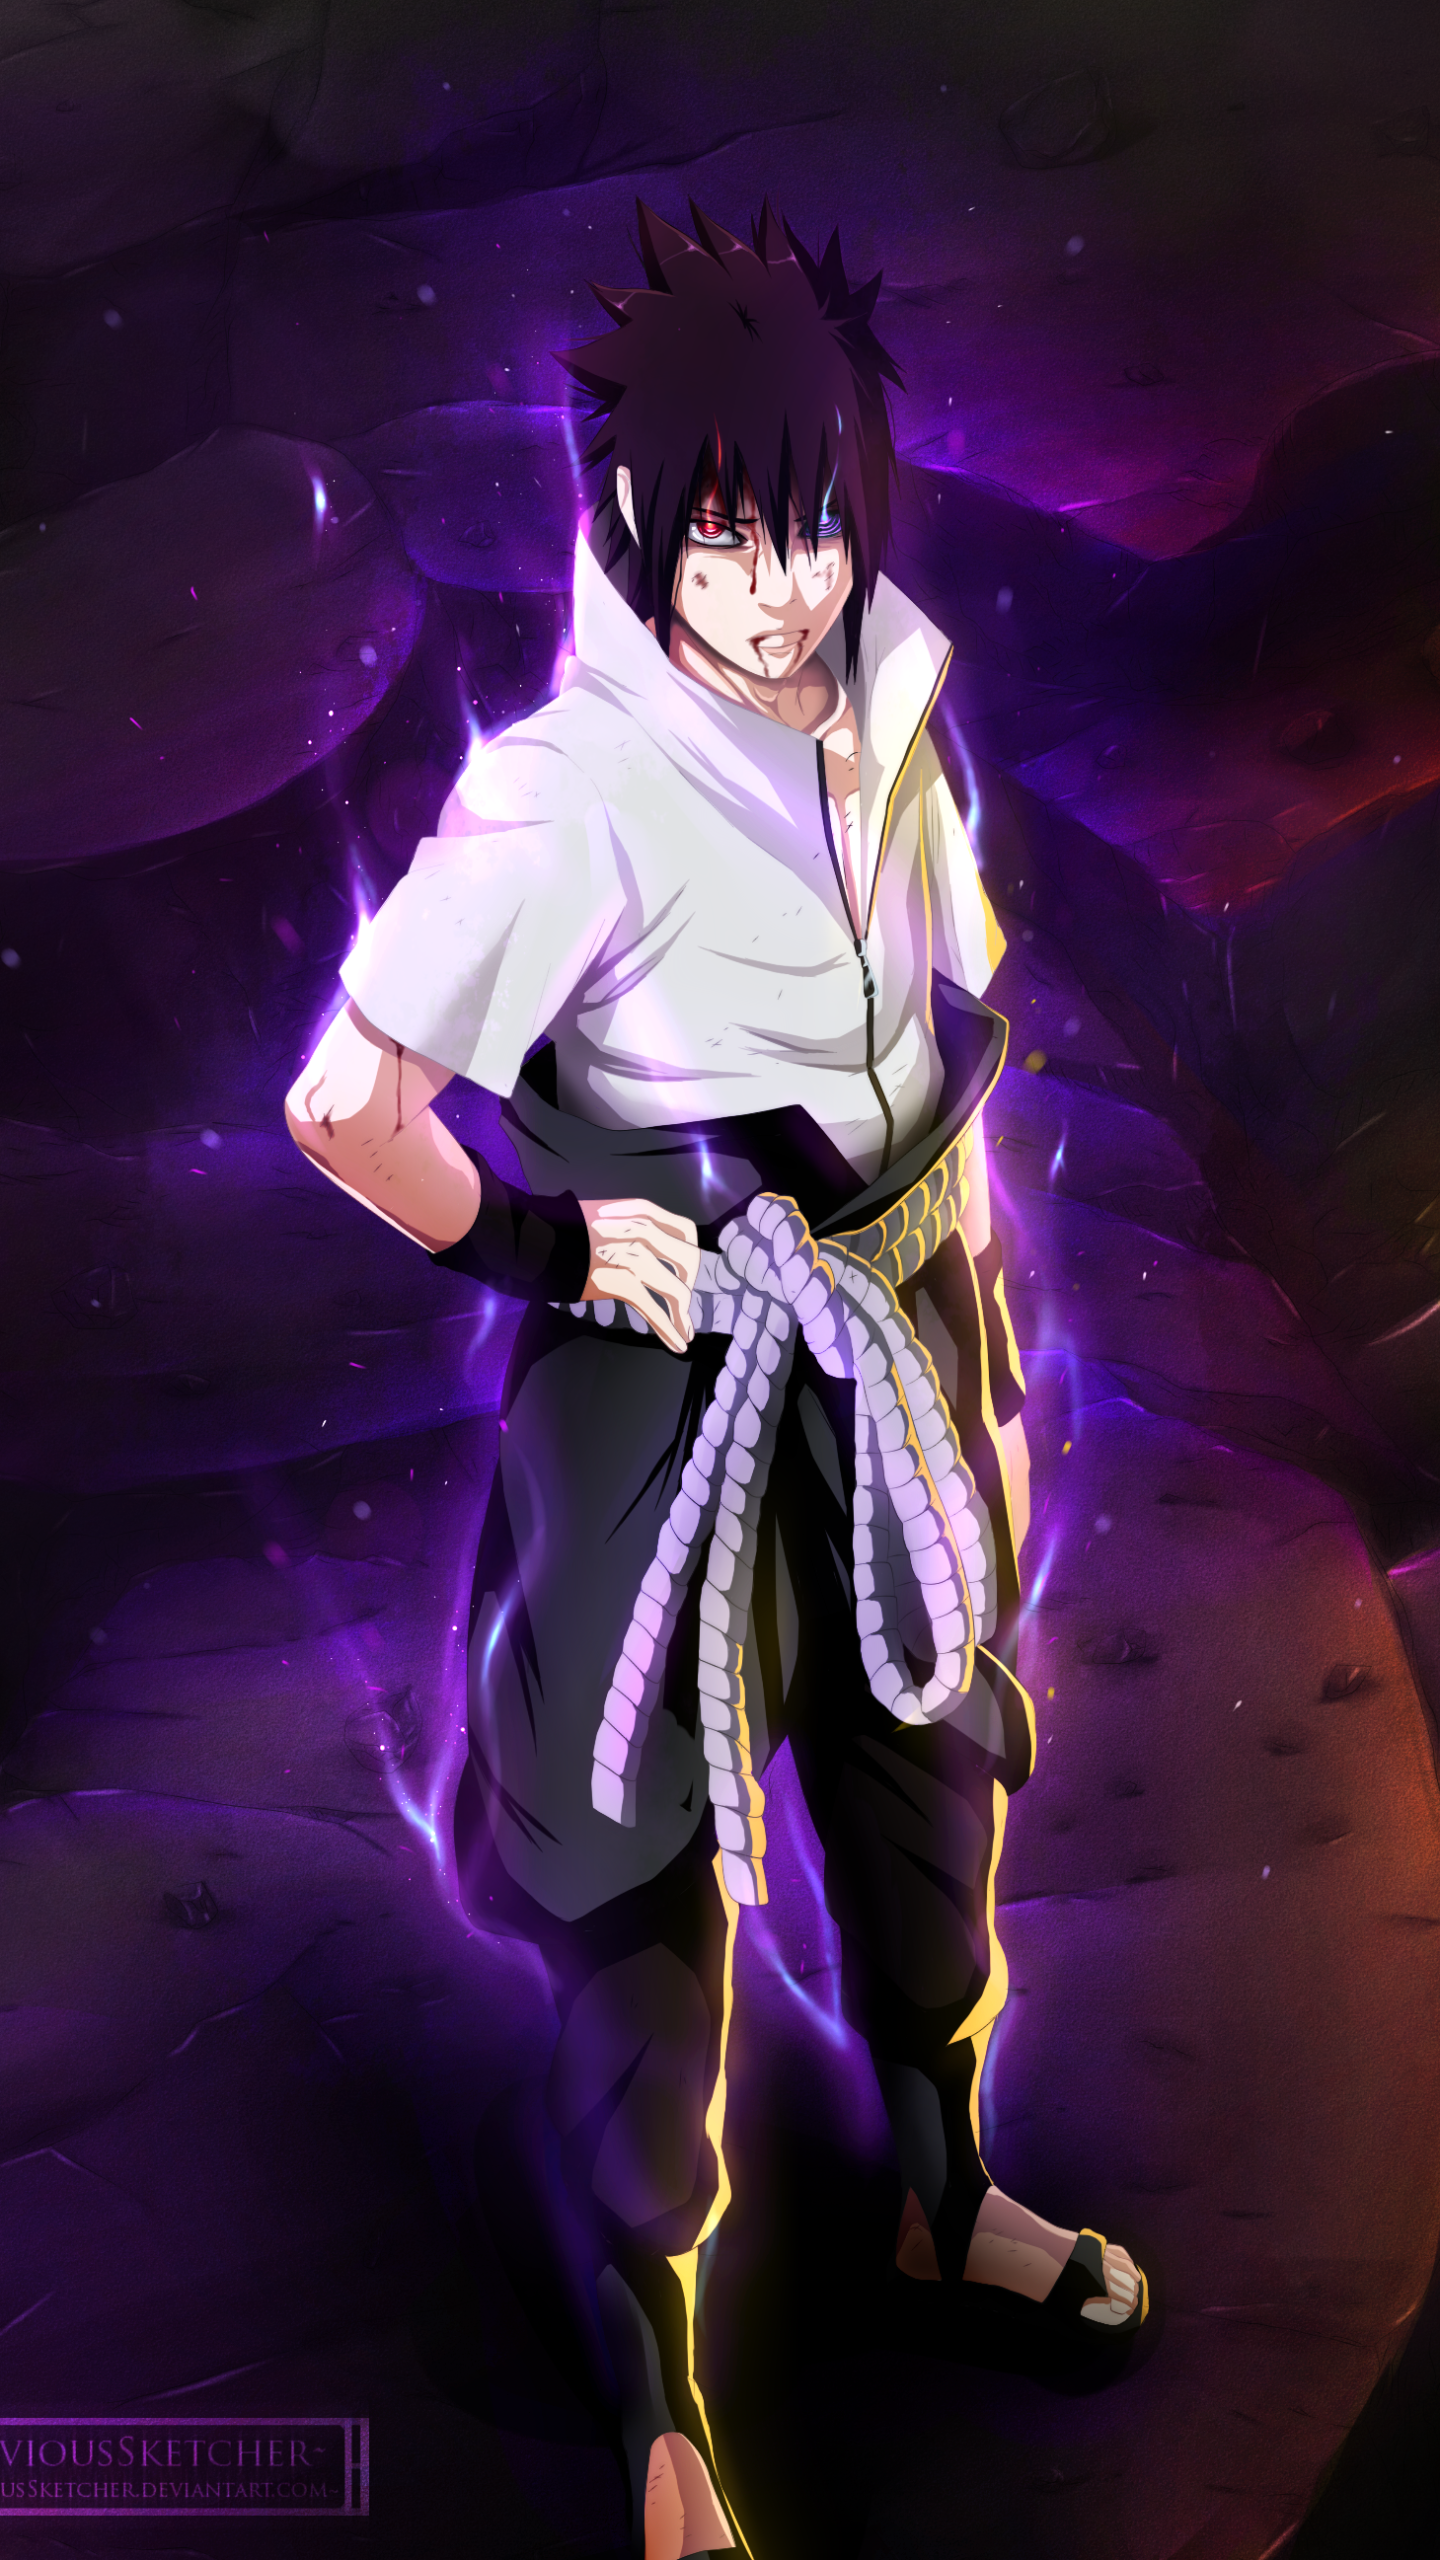 Download This Wallpaper Anime Naruto X For All Your Phones And Tablets